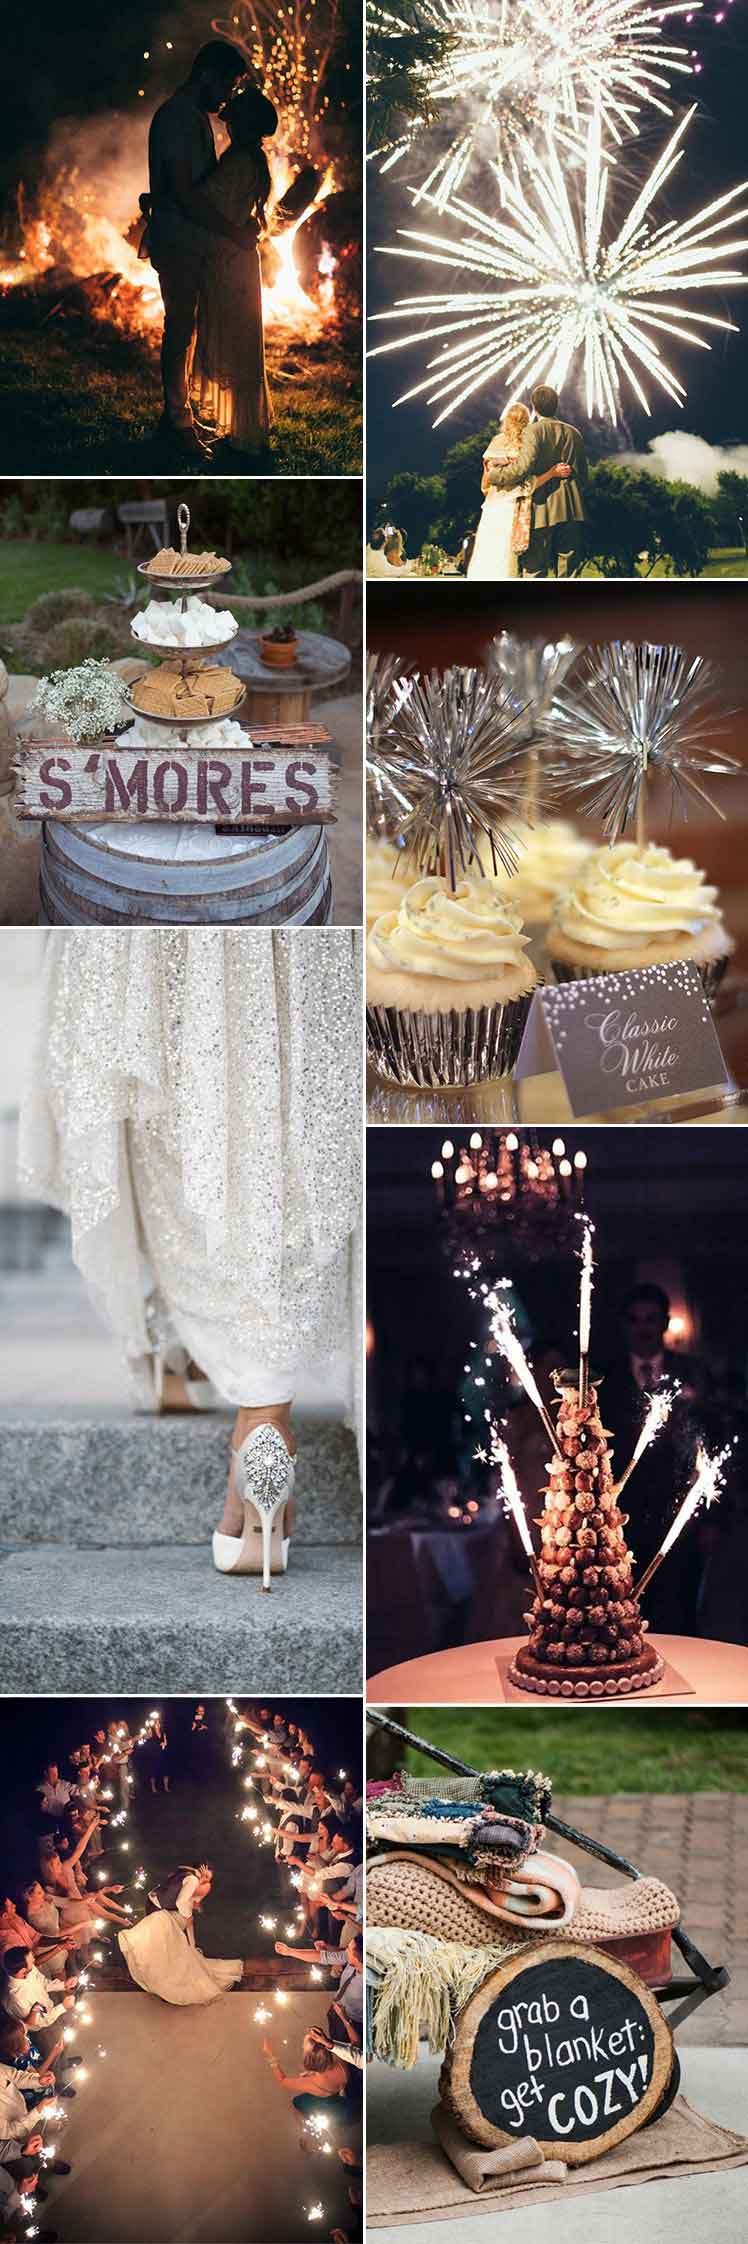 Bonfire Wedding Ideas